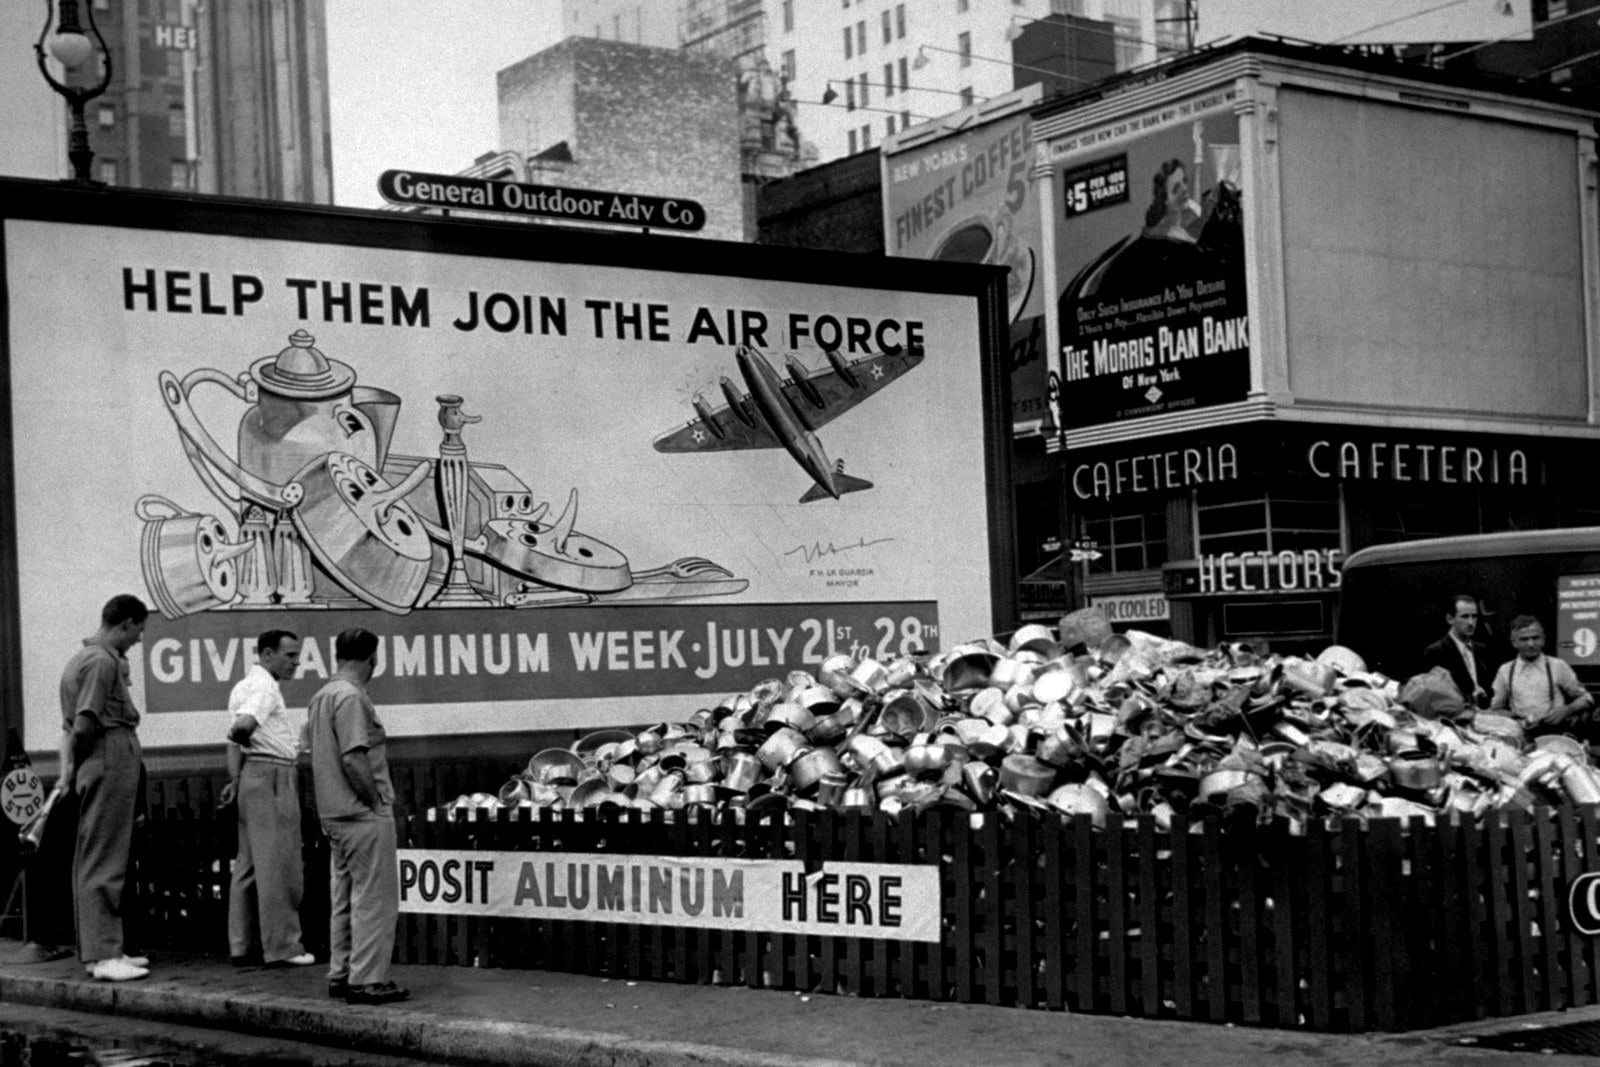 Aluminum is collected at an undisclosed location as part of the war effort, circa 1941.